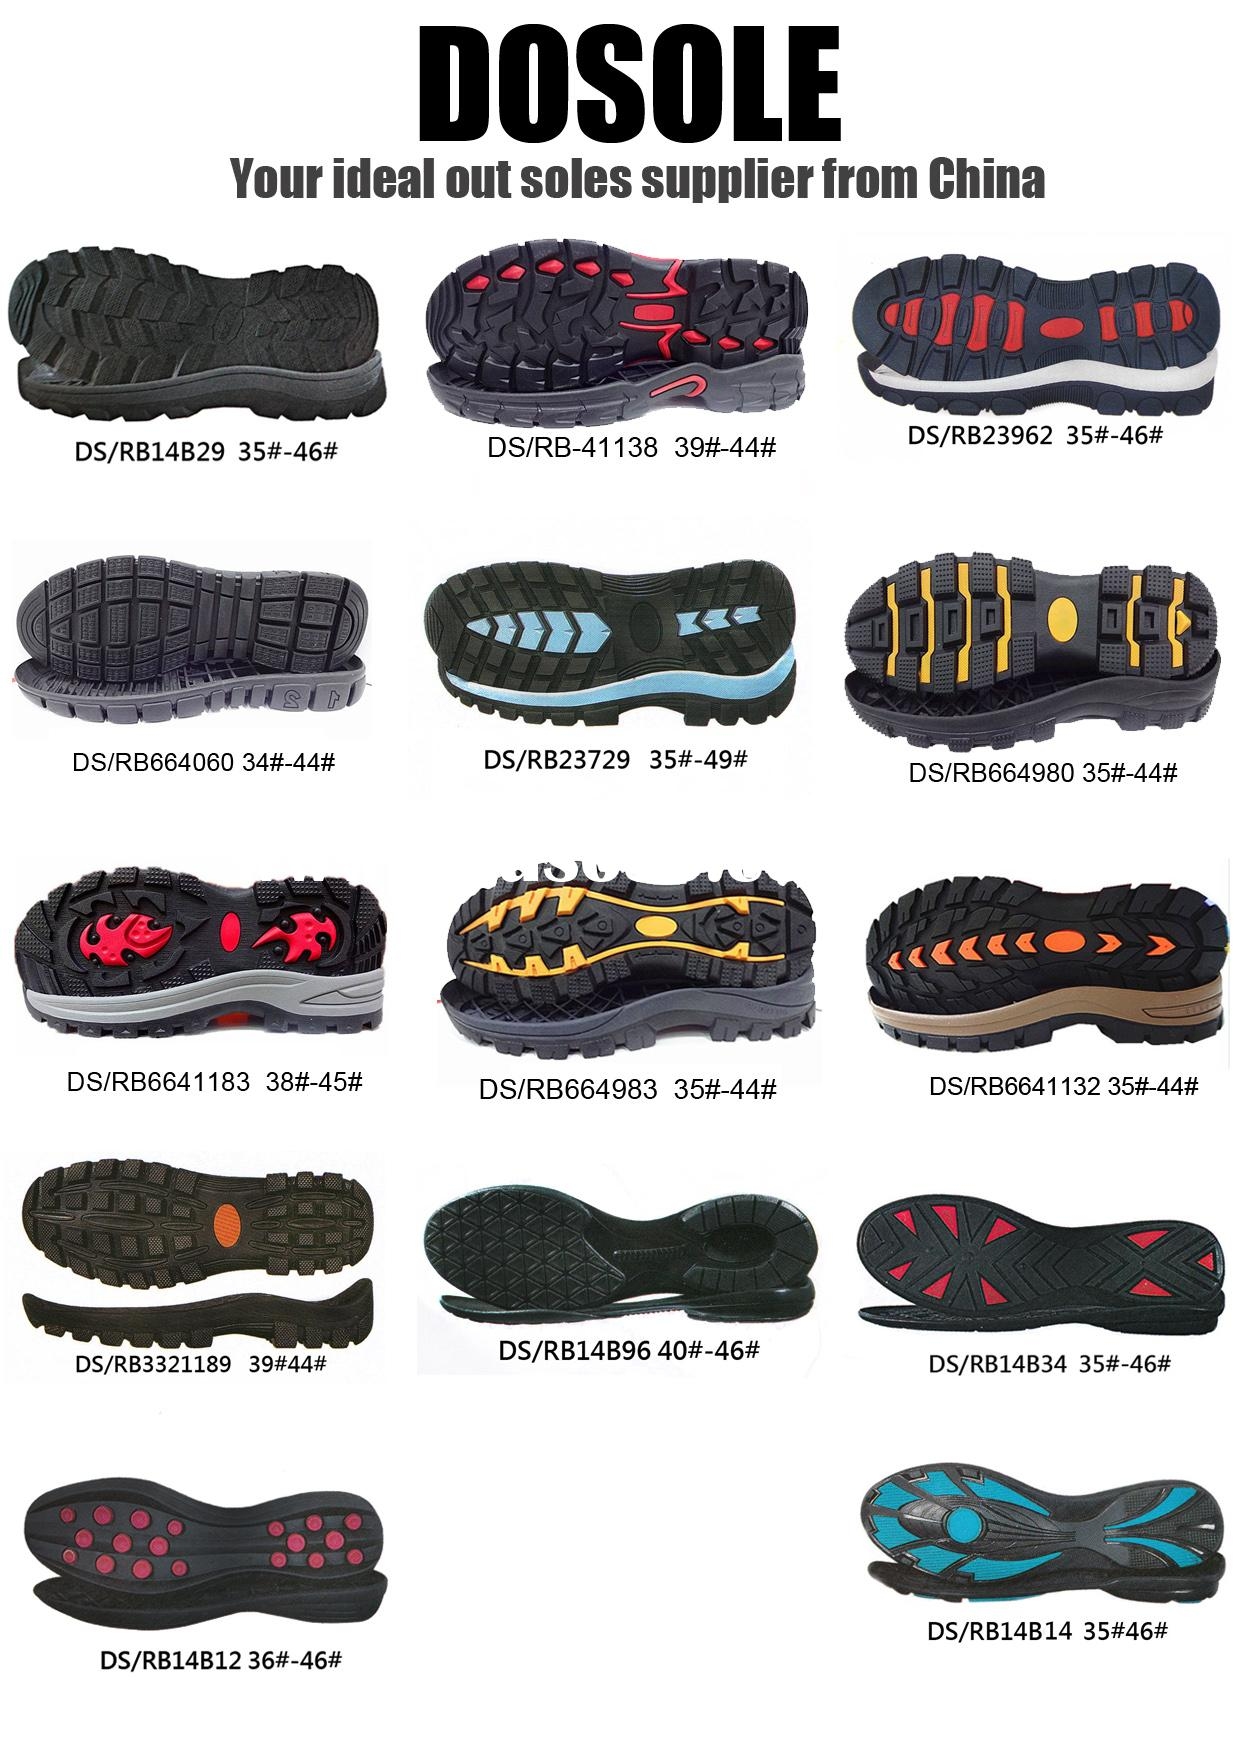 Rubber material shoe soles for casual shoes rubber outsoles leisure shoes rubber fashion shoe soles